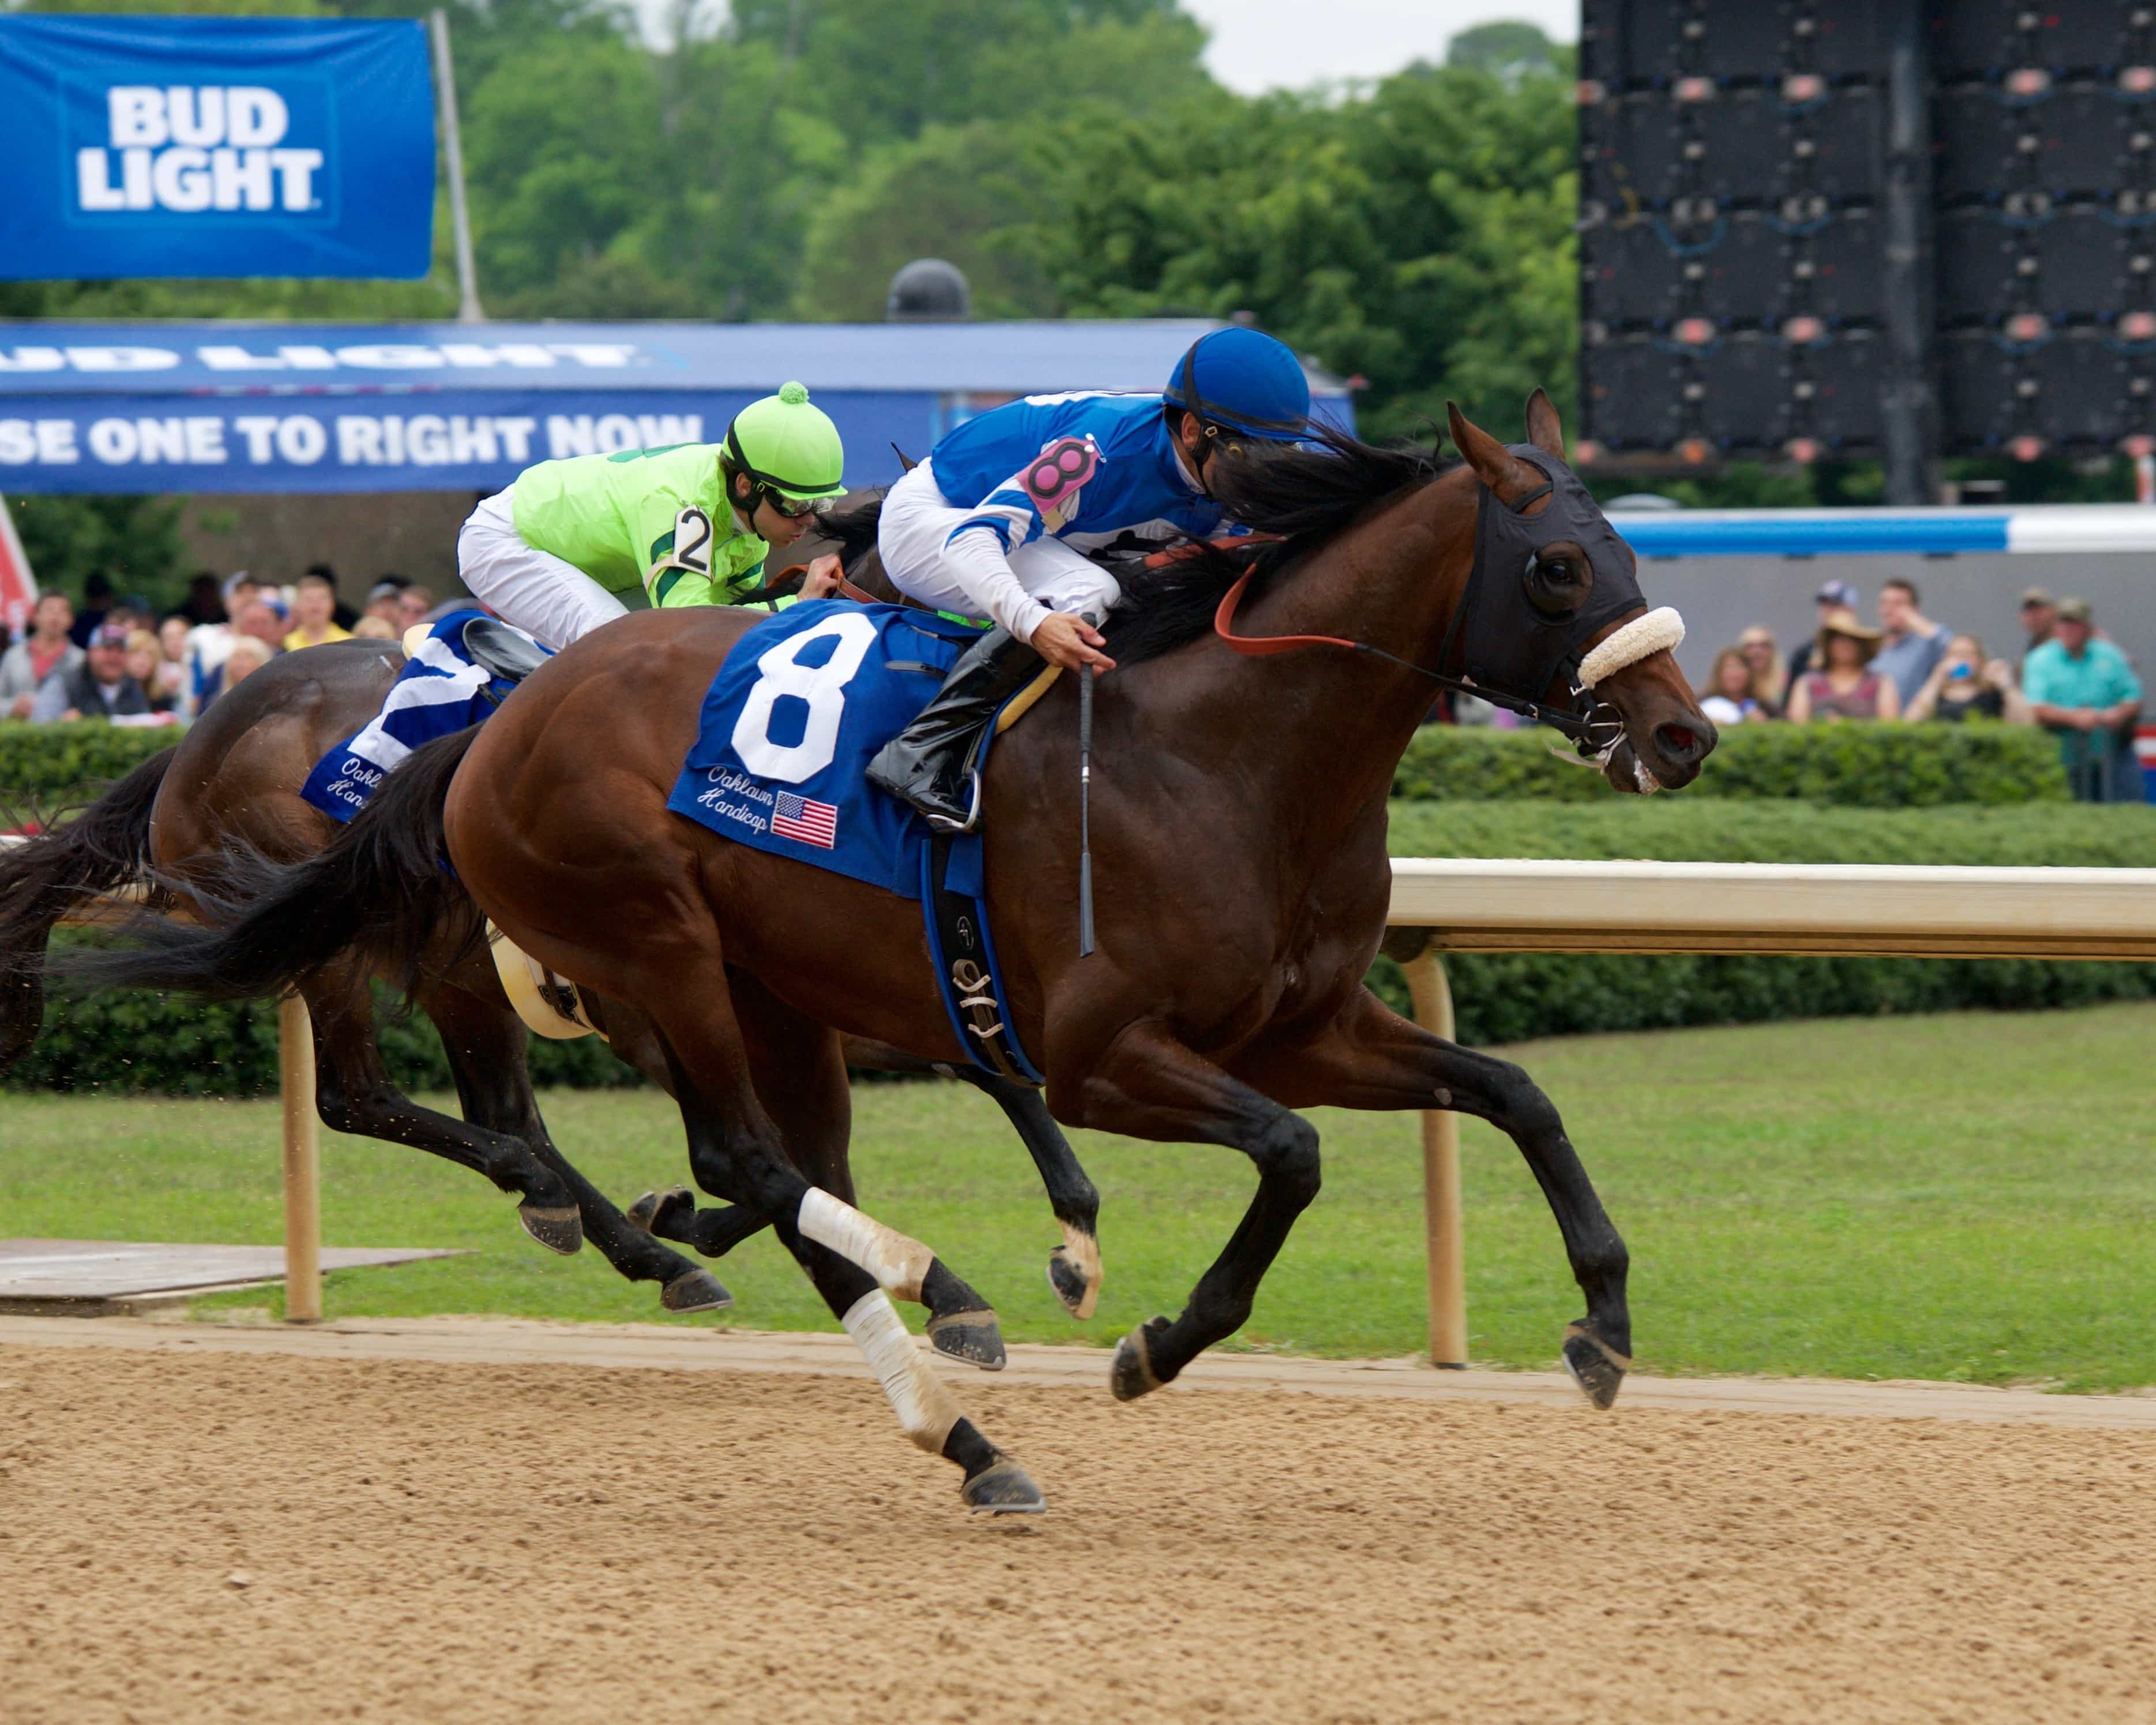 Effinex and Mike Smith passing Melatonin to win the Oaklawn Handicap  Chris Aplin